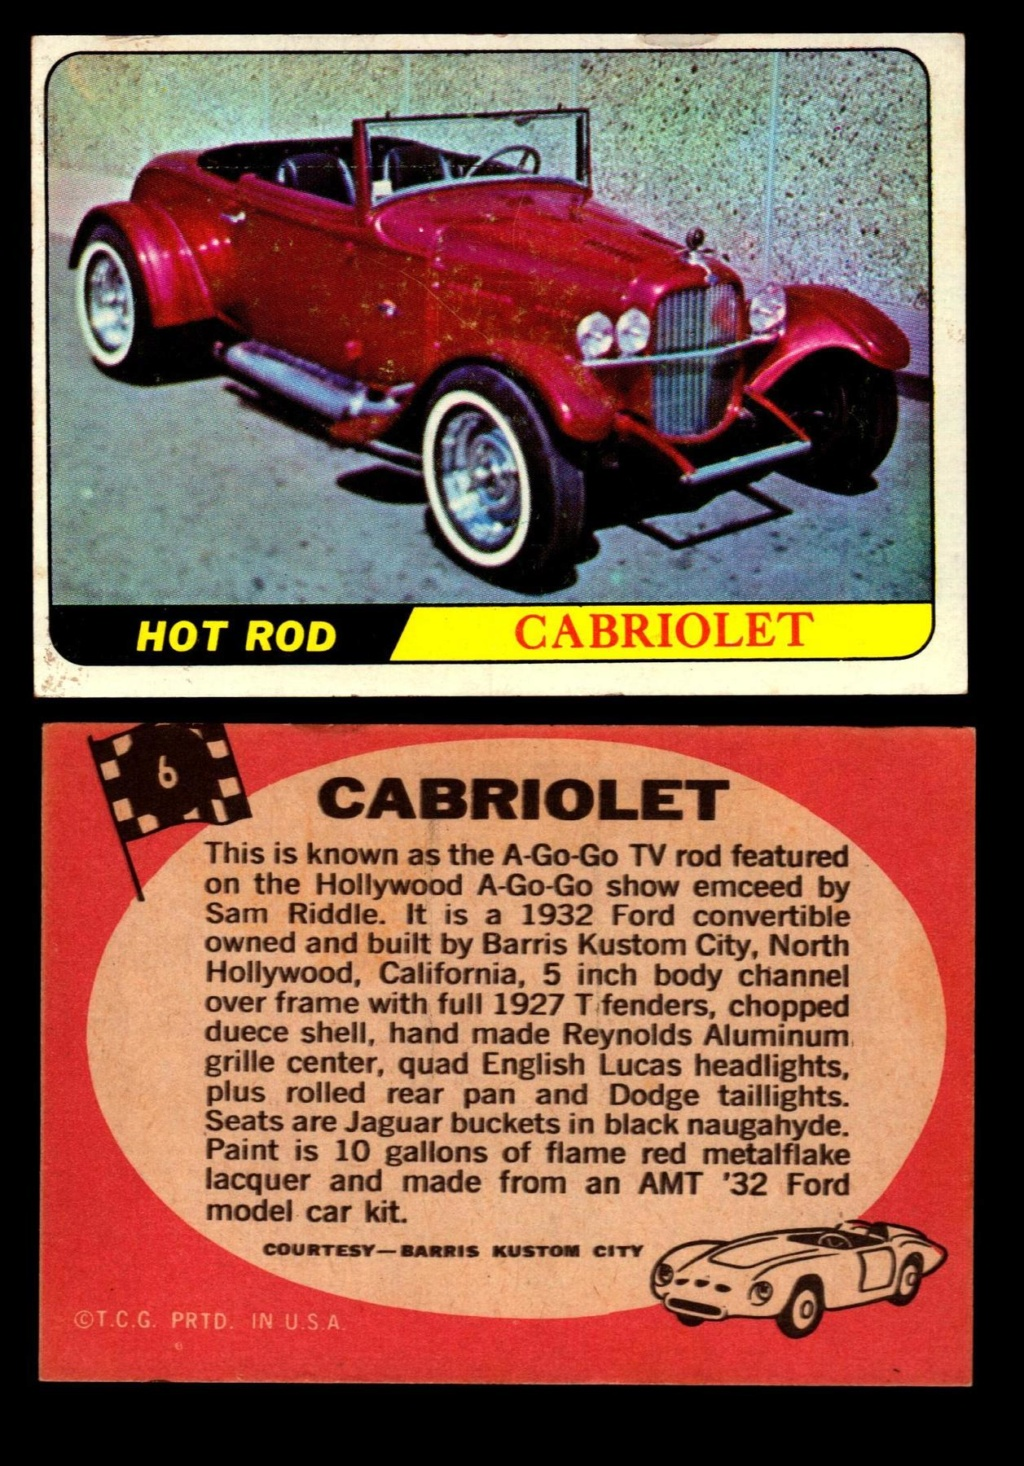 Hot Rods Topps - Vintage Trading Cards 1968 - Custom car - Dragster - Racer - Dream car - Barris Kustom City - Ed Roth Darrill Starbird, Gene Winfield, Bill Cuchenberry 6_5d5910